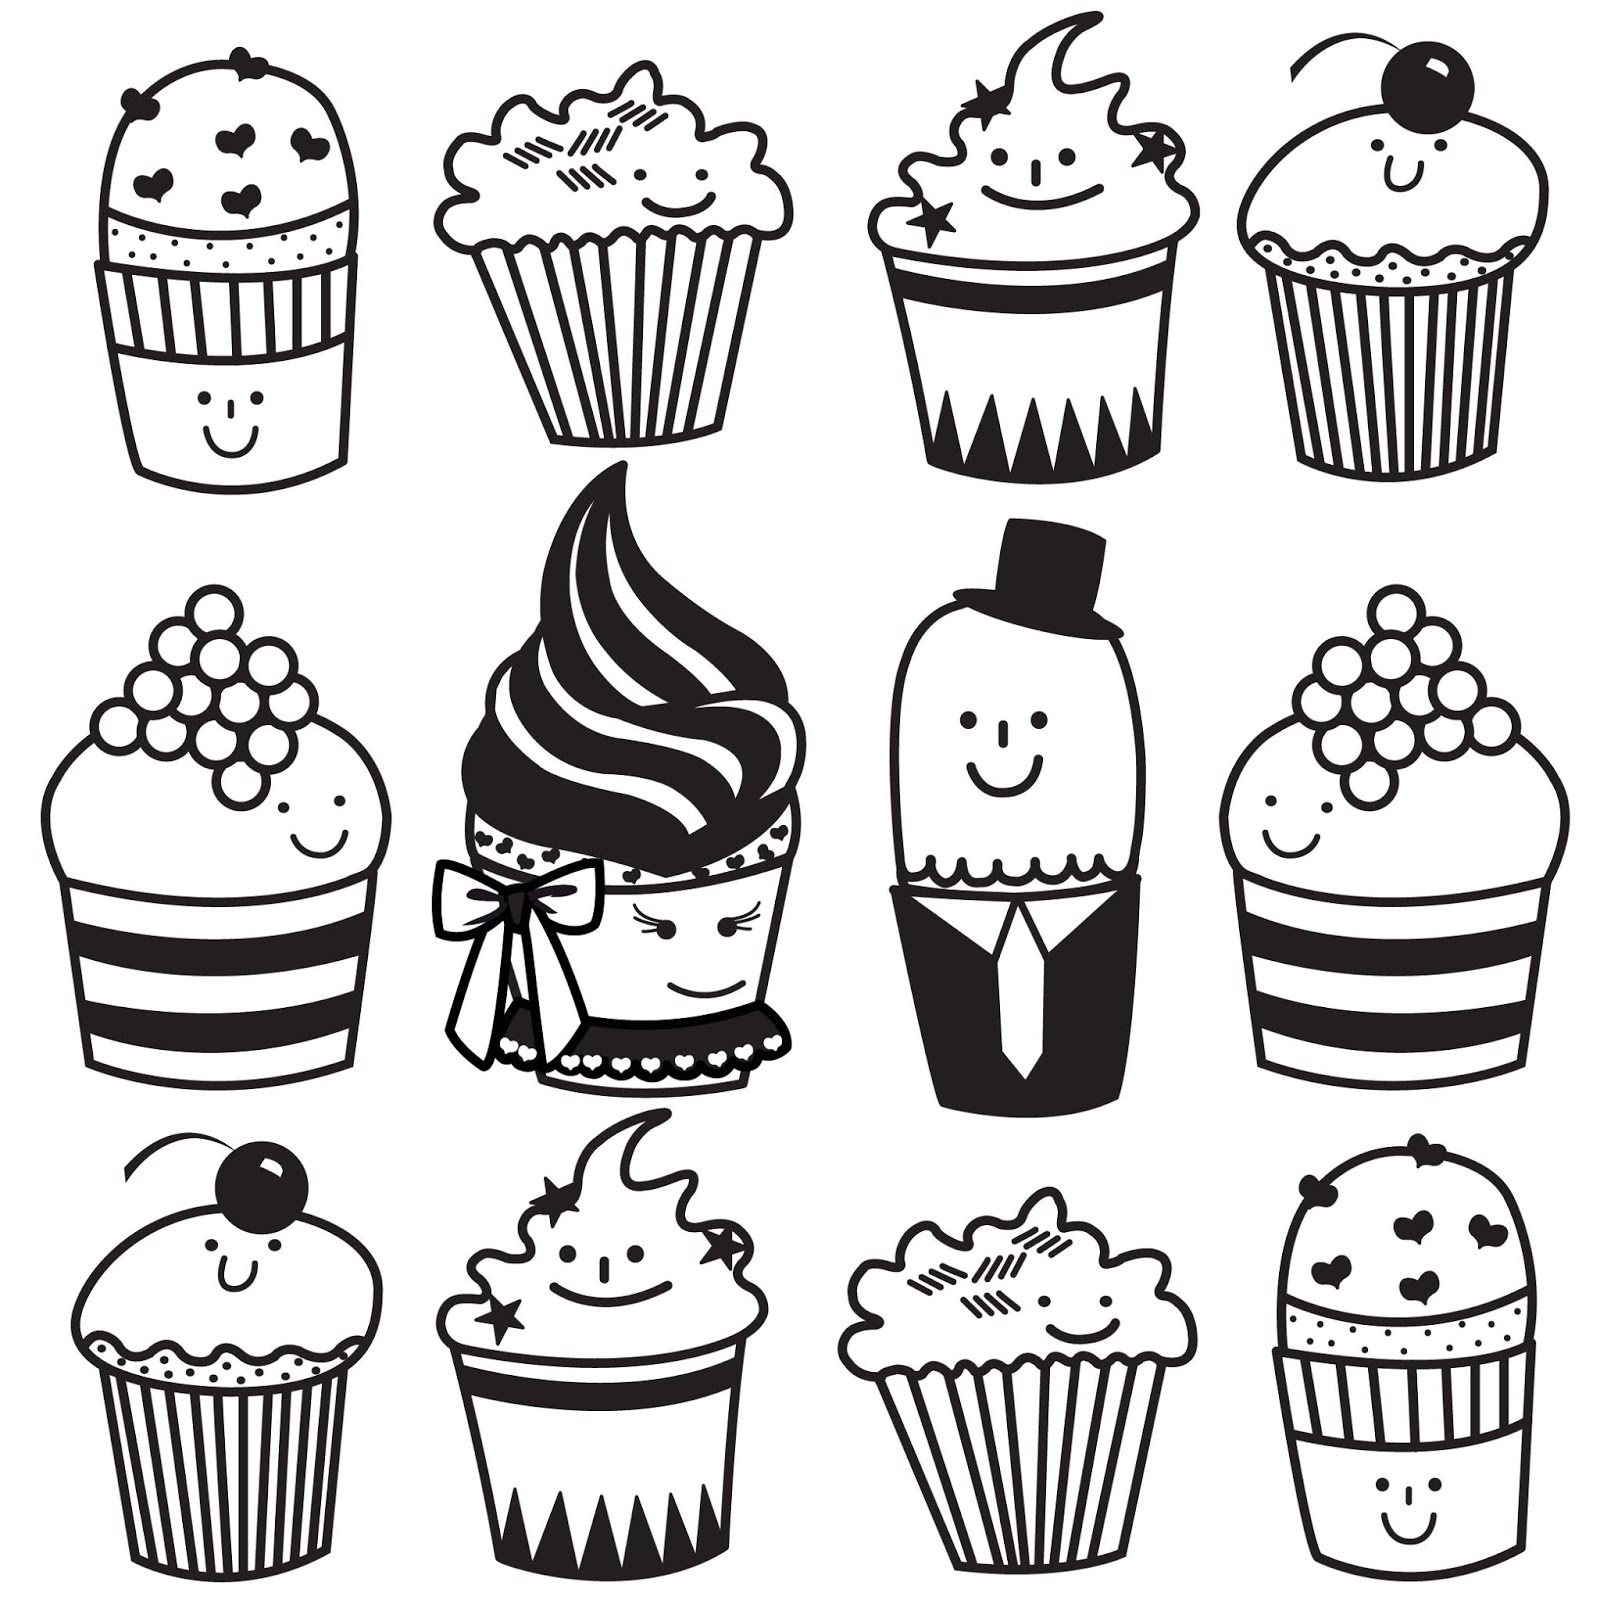 1600x1600 Cute Cupcake Drawing Cute Cupcake Line Drawing Images Pictures